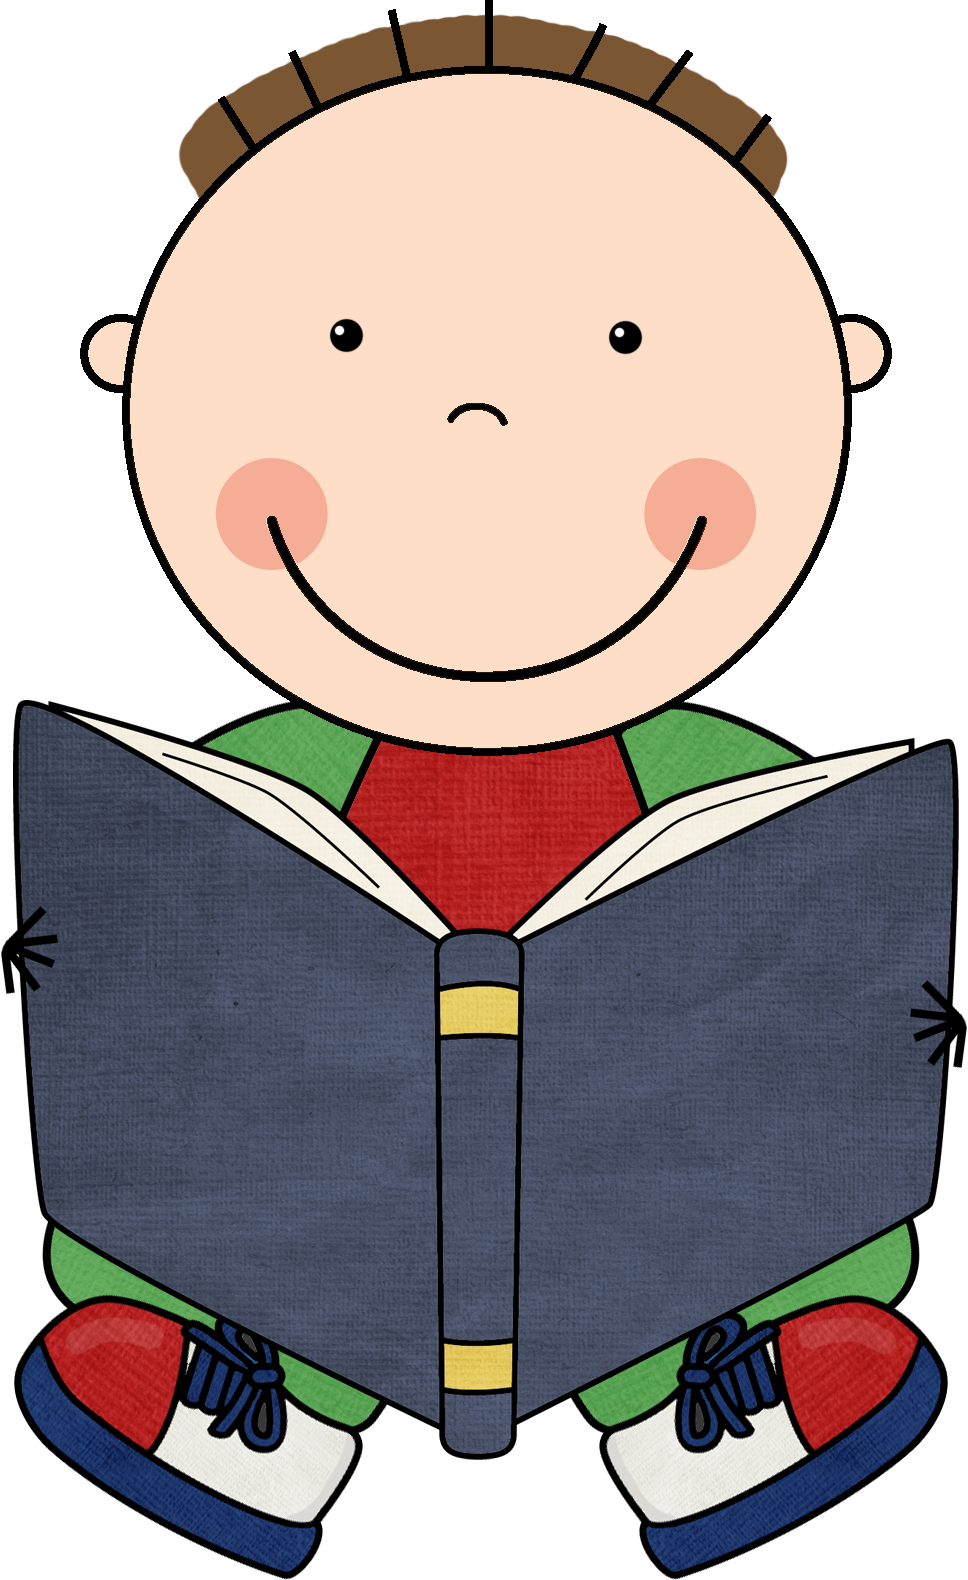 Read To Someone Daily 5 | Clipart Panda - Free Clipart Images